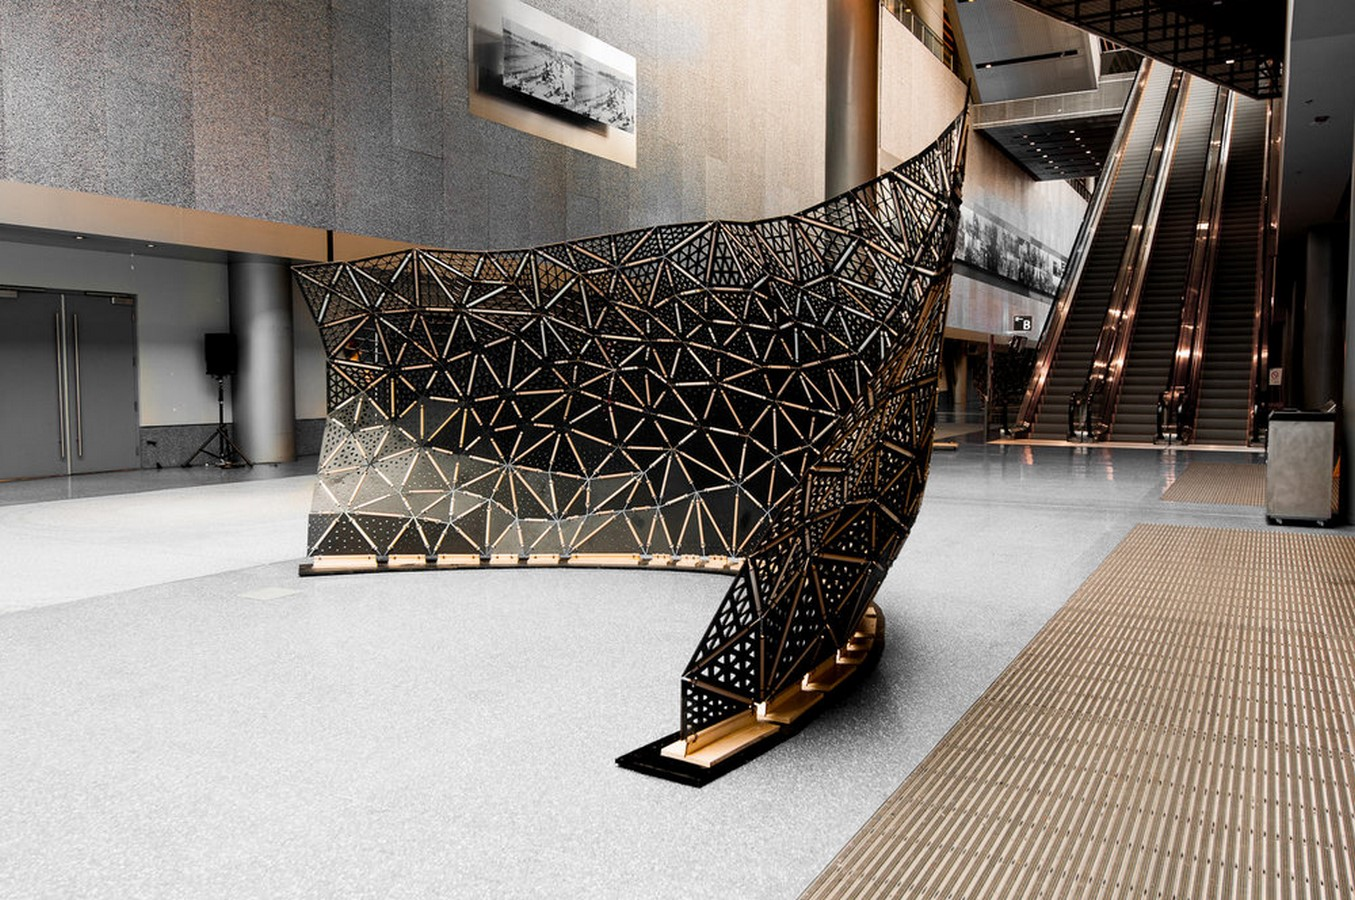 Debunking Myths: 10 myths about Parametric architecture - Sheet8